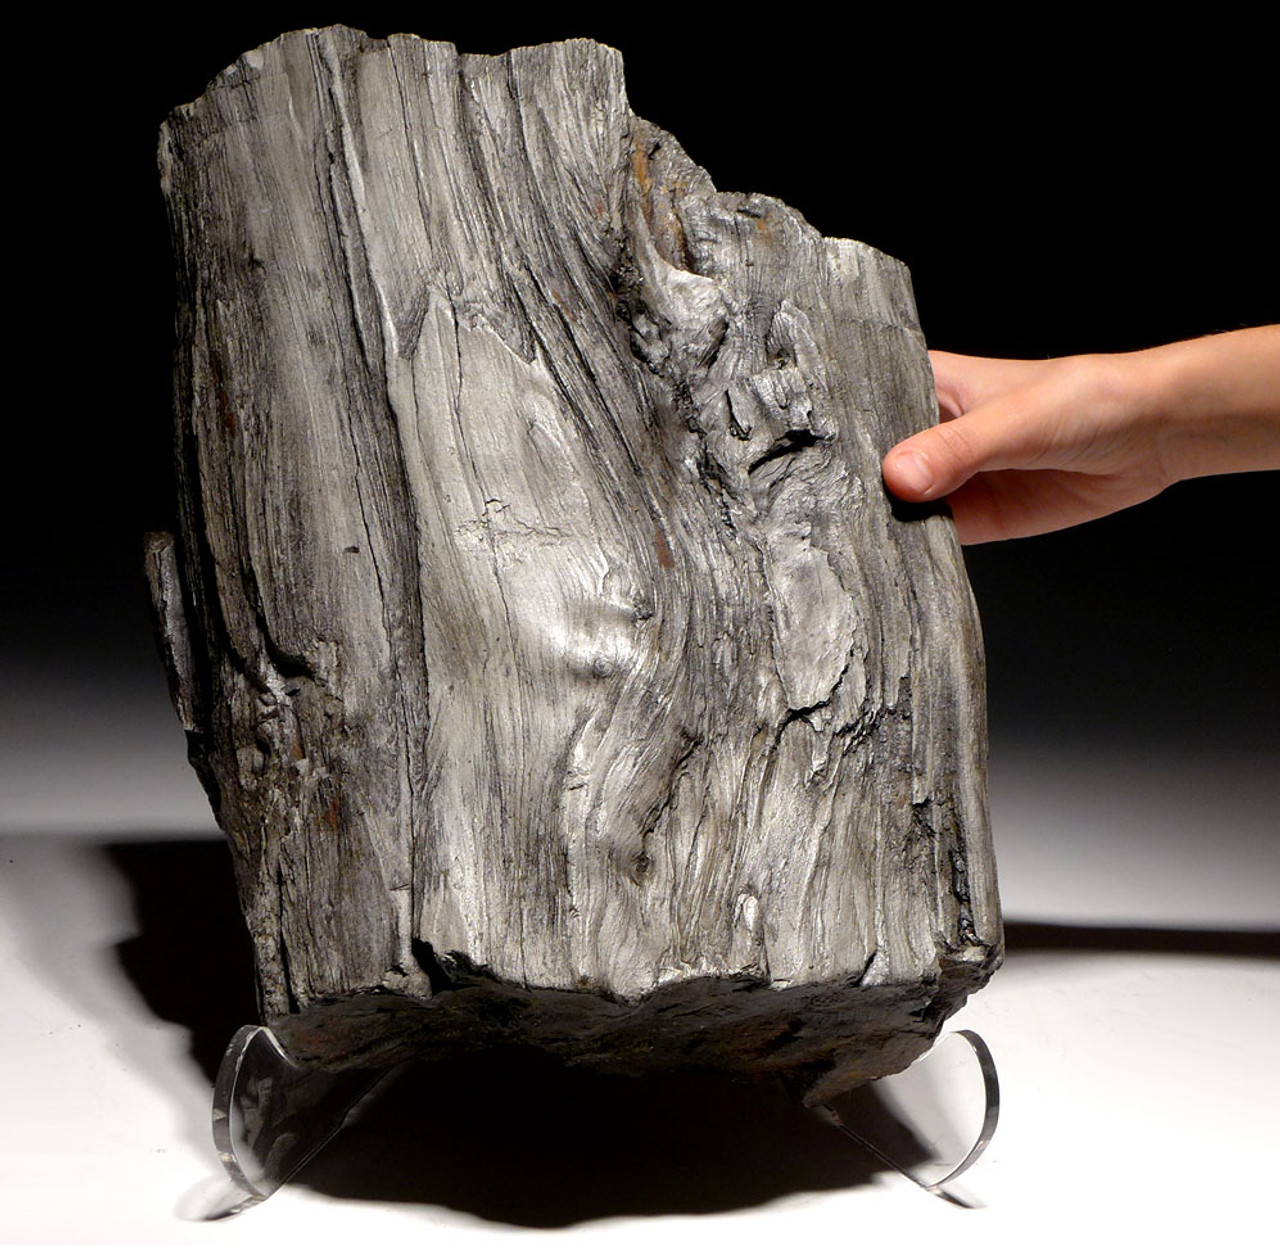 PL151 - GIANT PREHISTORIC LOG FOSSIL WITH PETRIFIED WOOD NATURAL DETAIL FROM THE MIOCENE